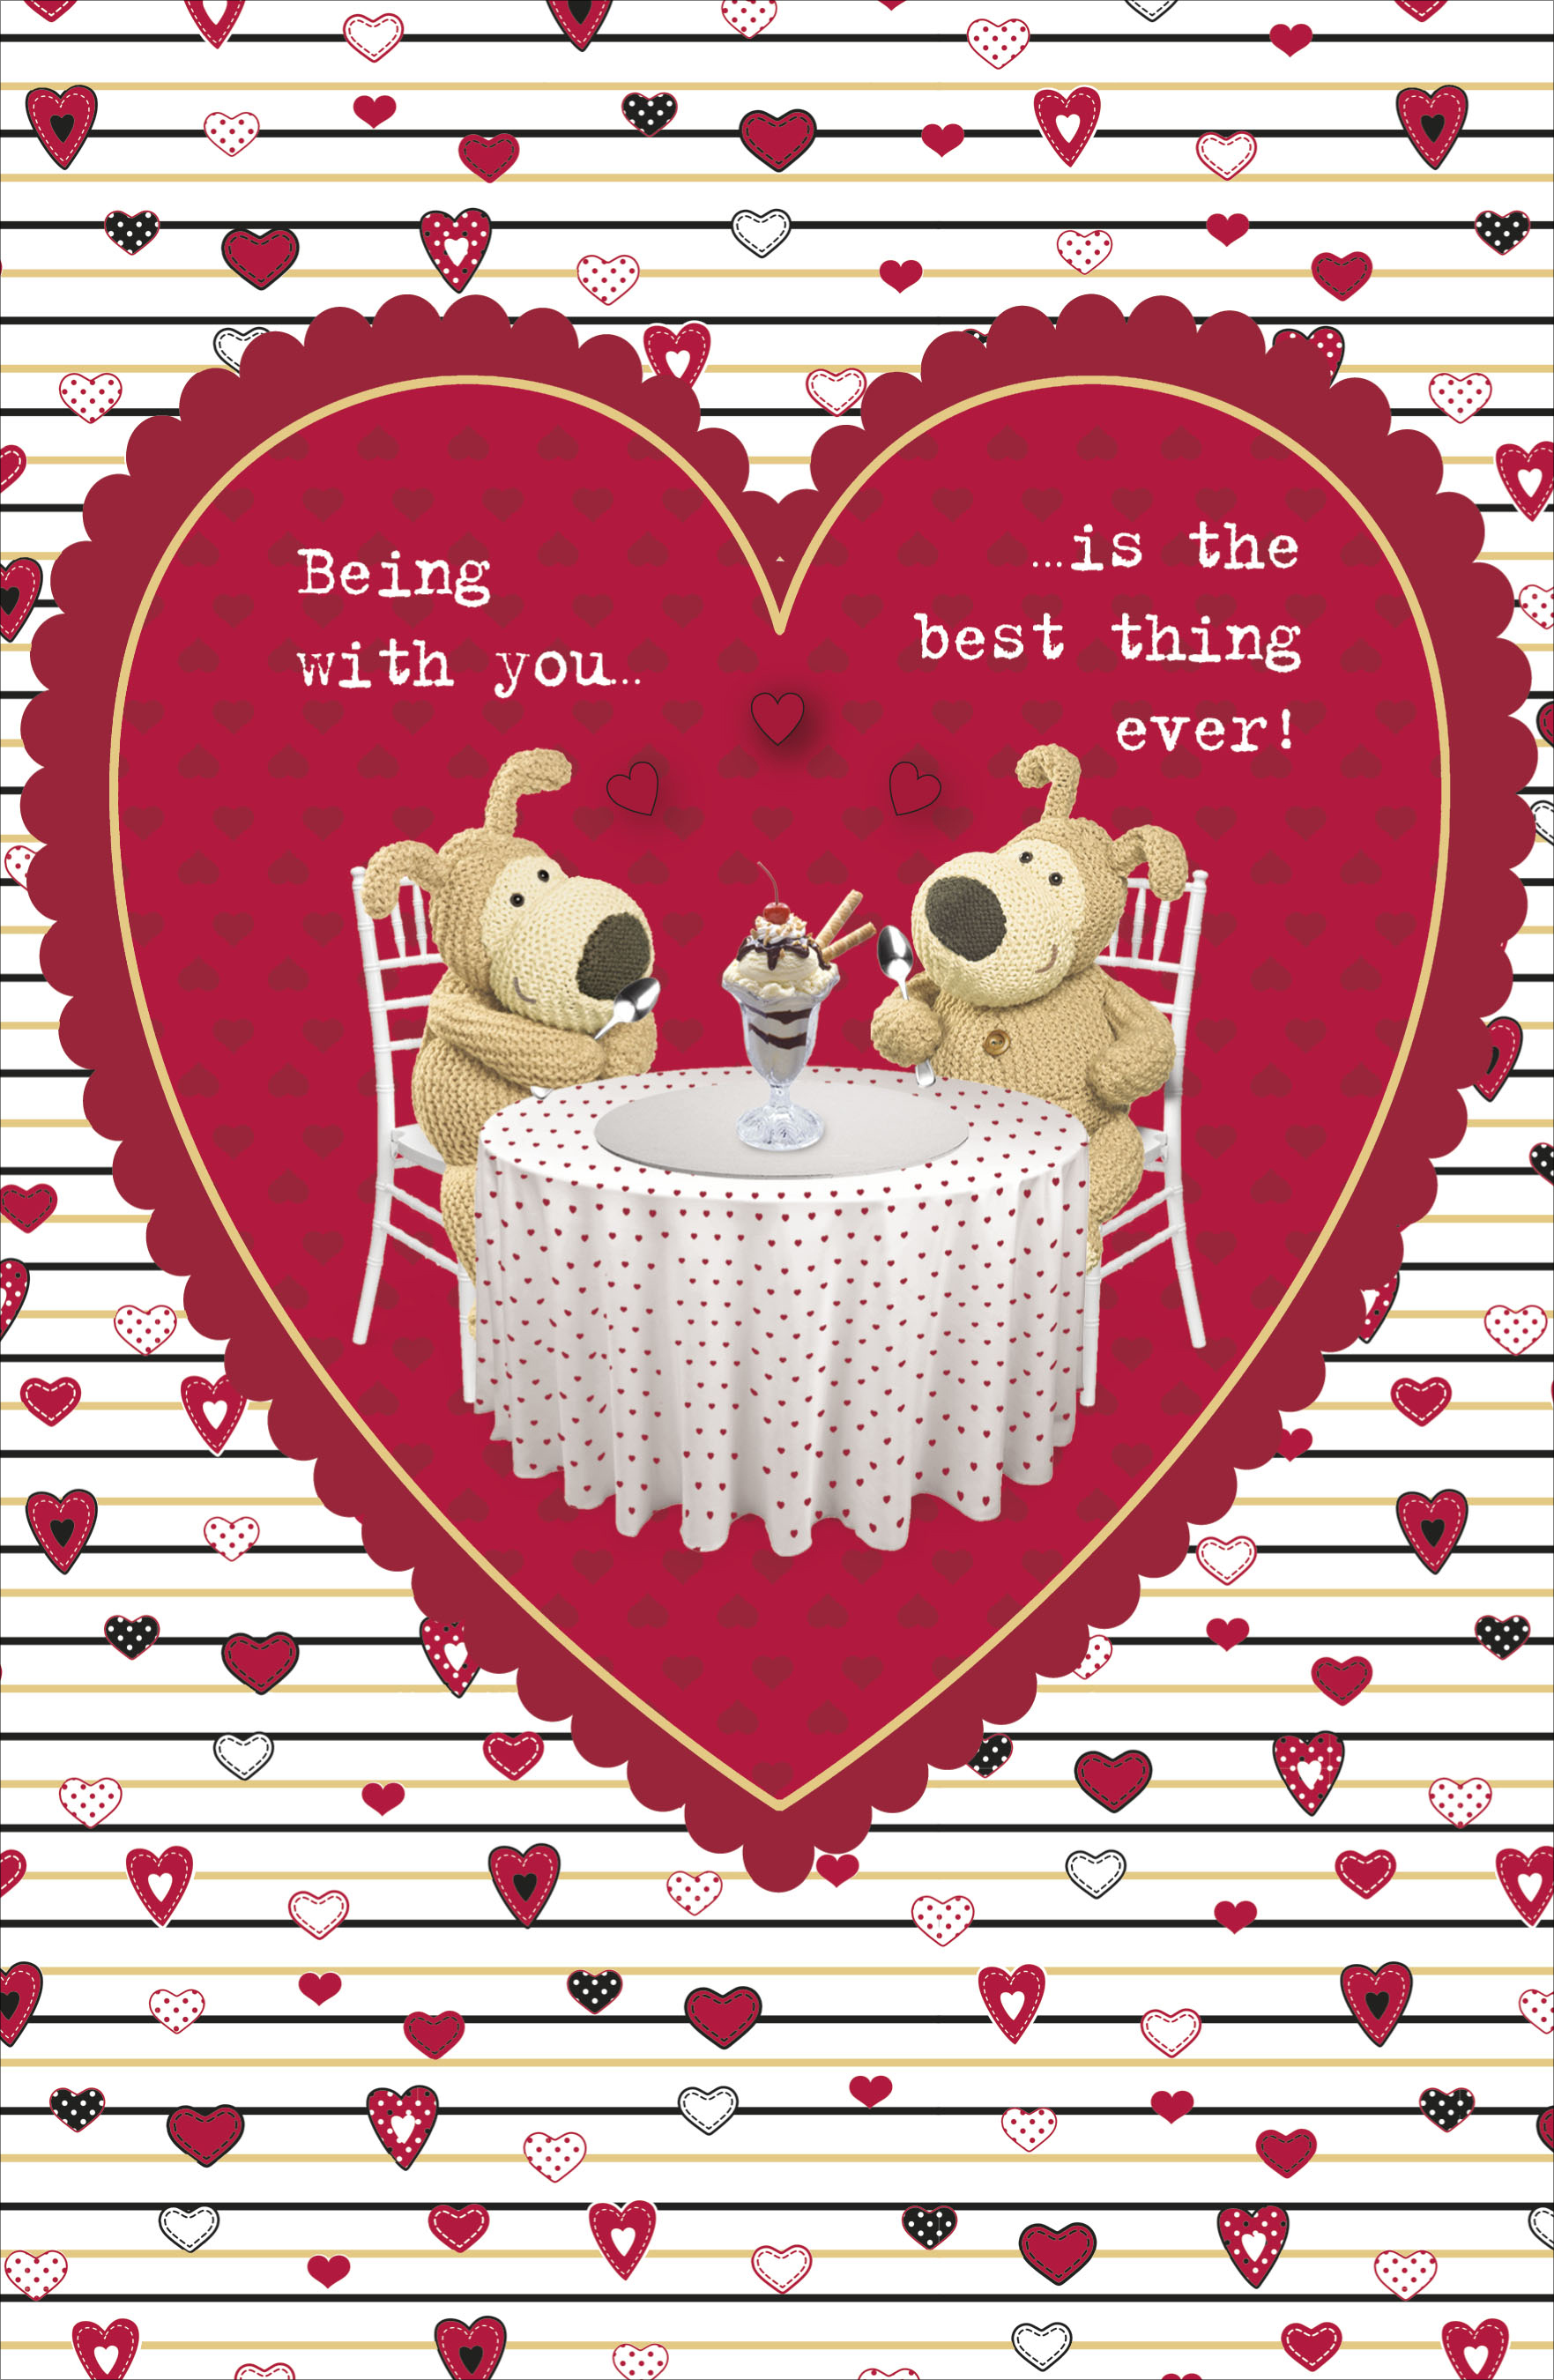 Boofle Best Thing Ever Valentines Day Card Cute Greeting Cards